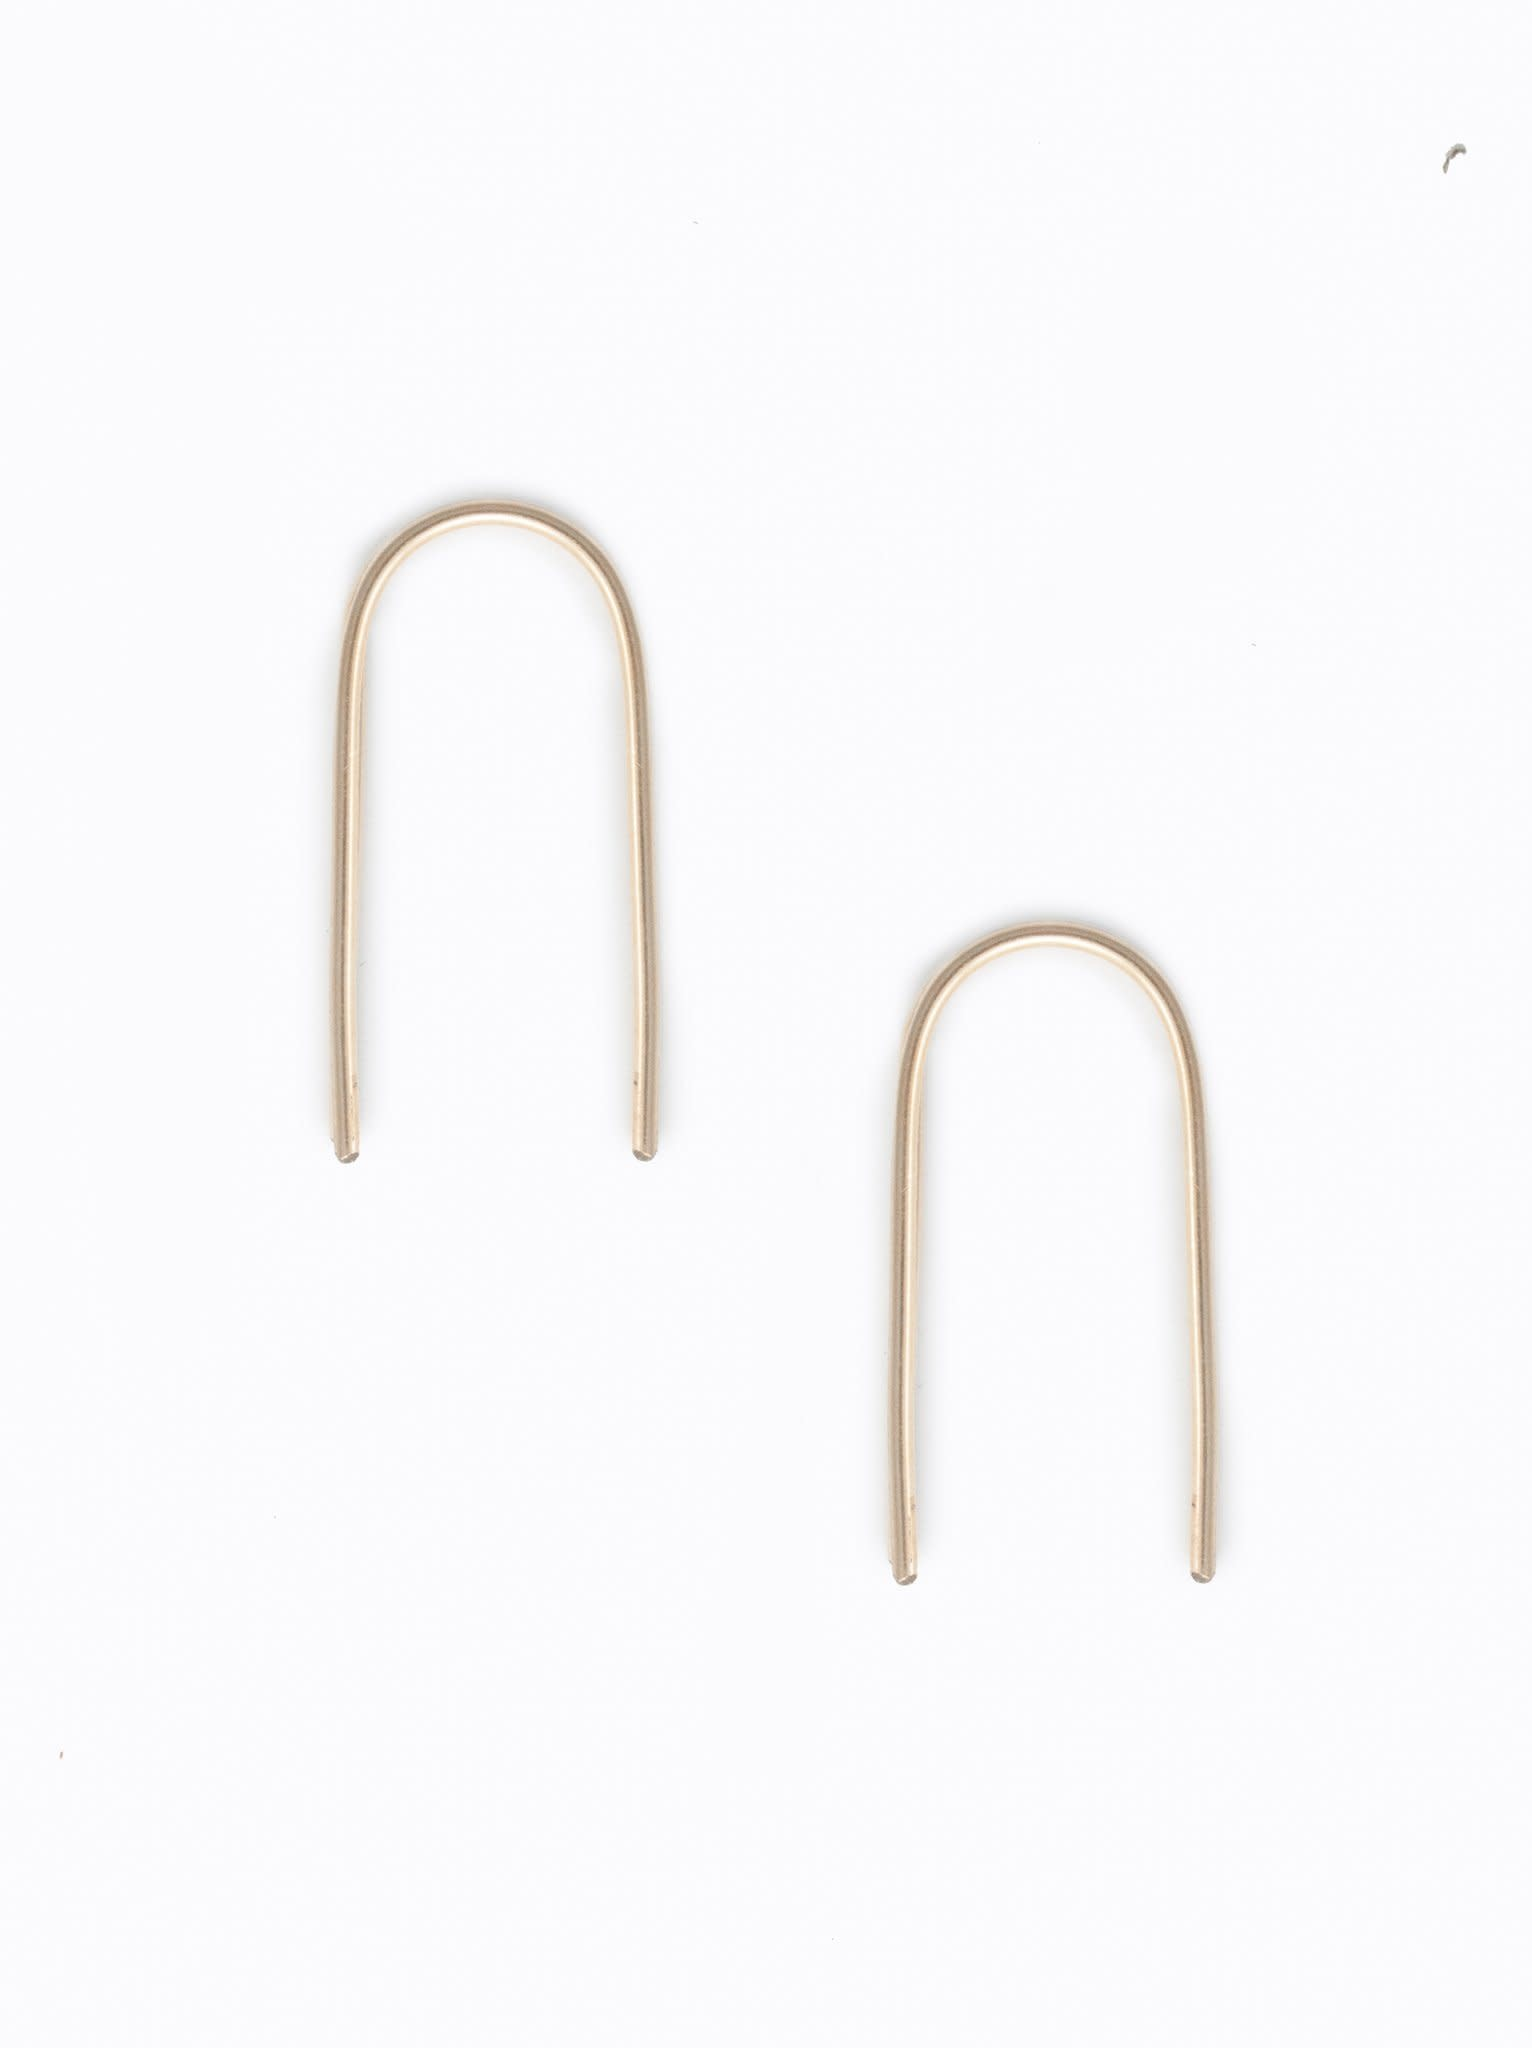 ABLE Gold Ear Arch Earrings